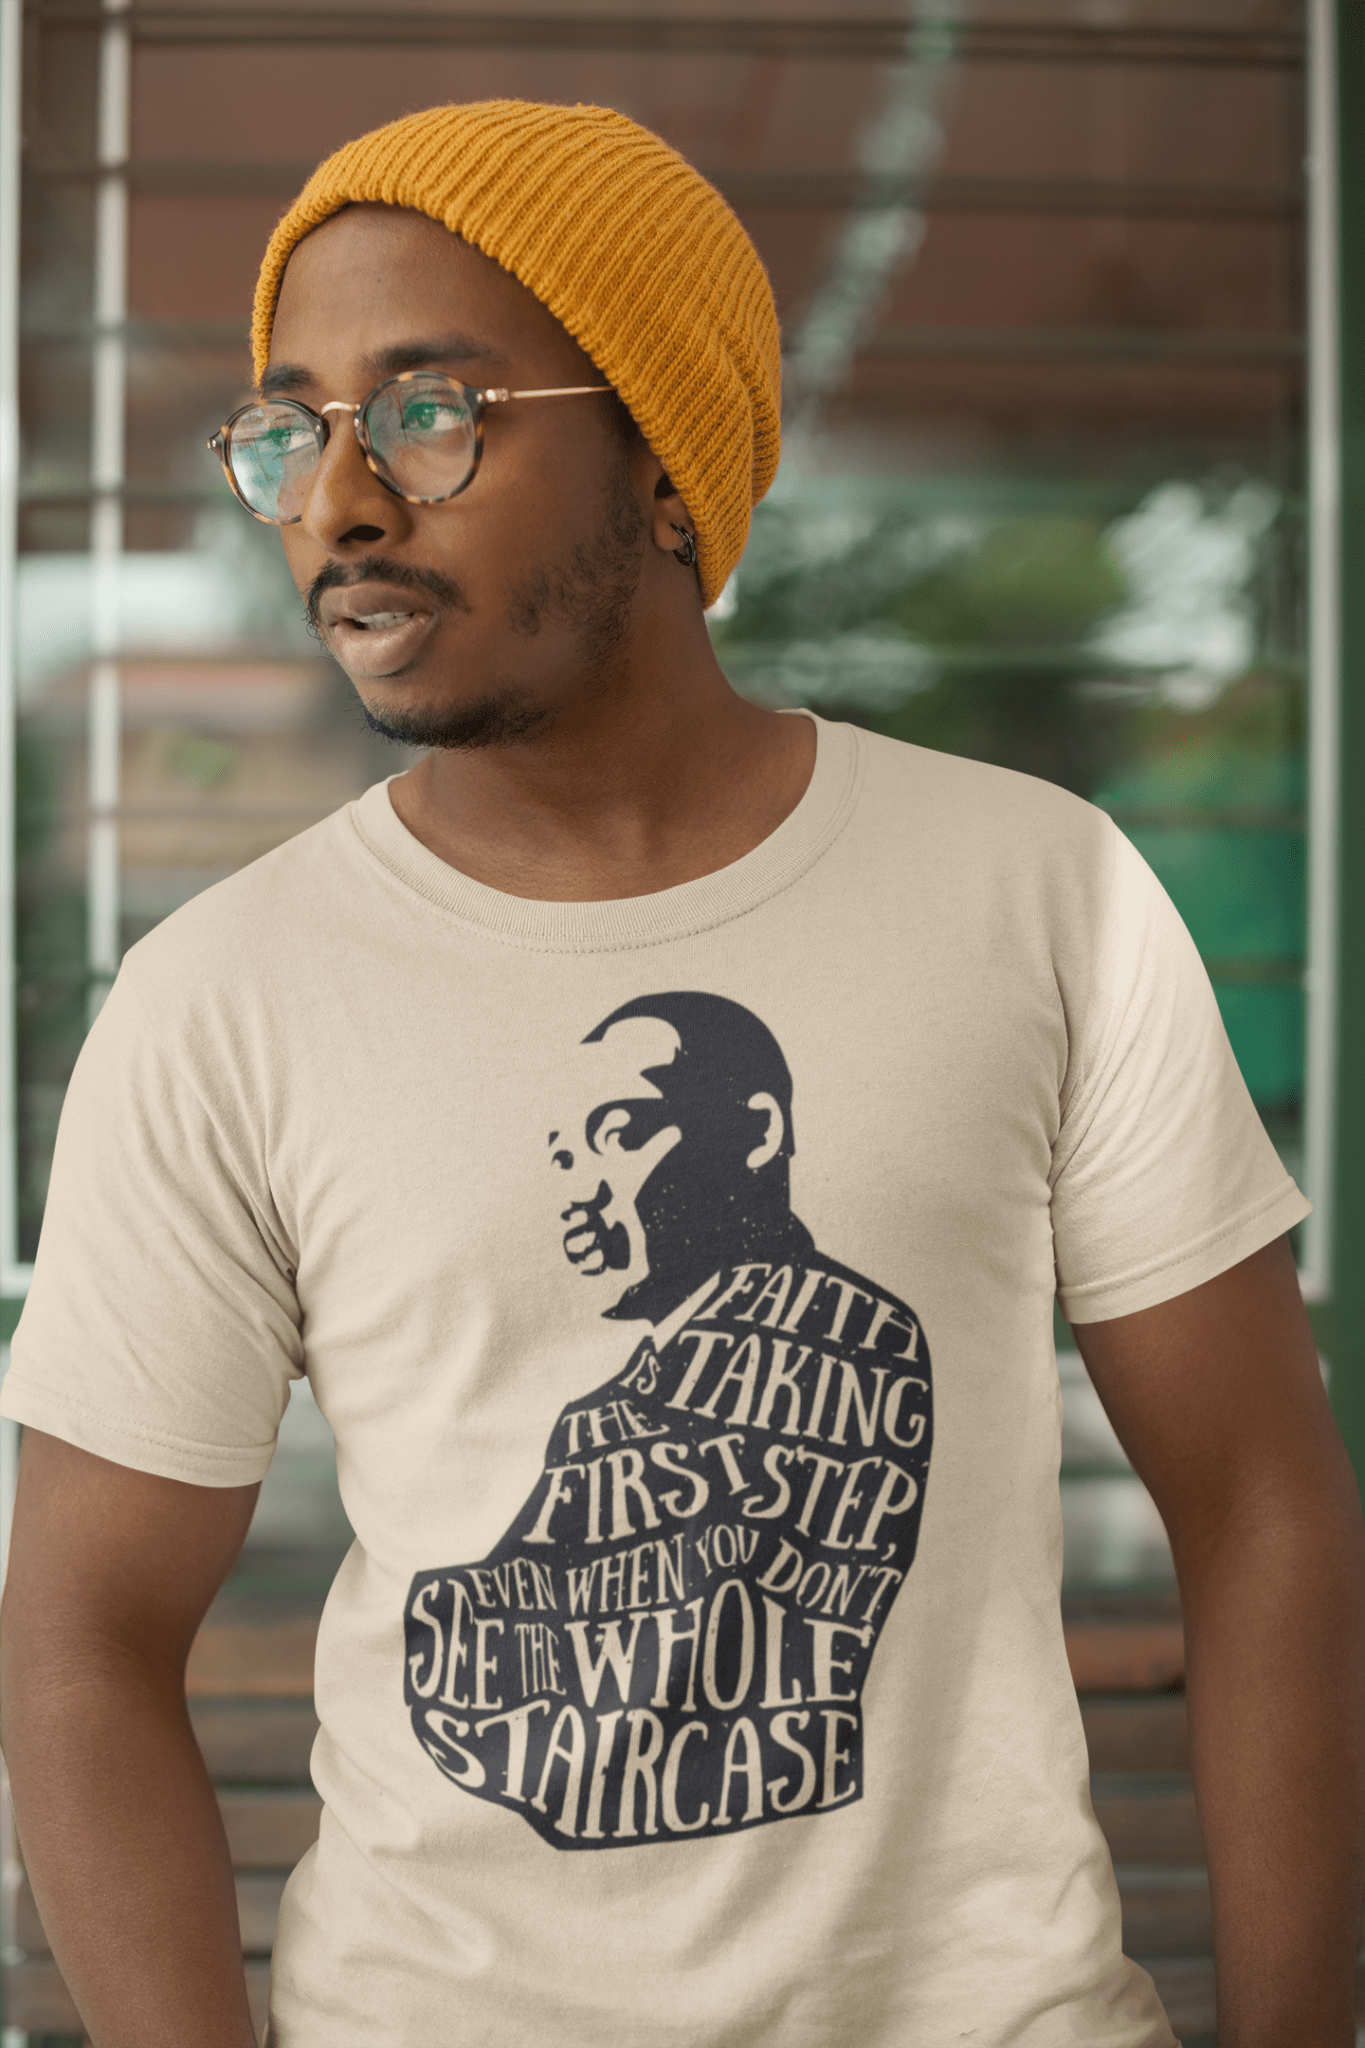 t-shirt-mockup-of-a-man-with-trendy-glasses-and-a-winter-hat-21033